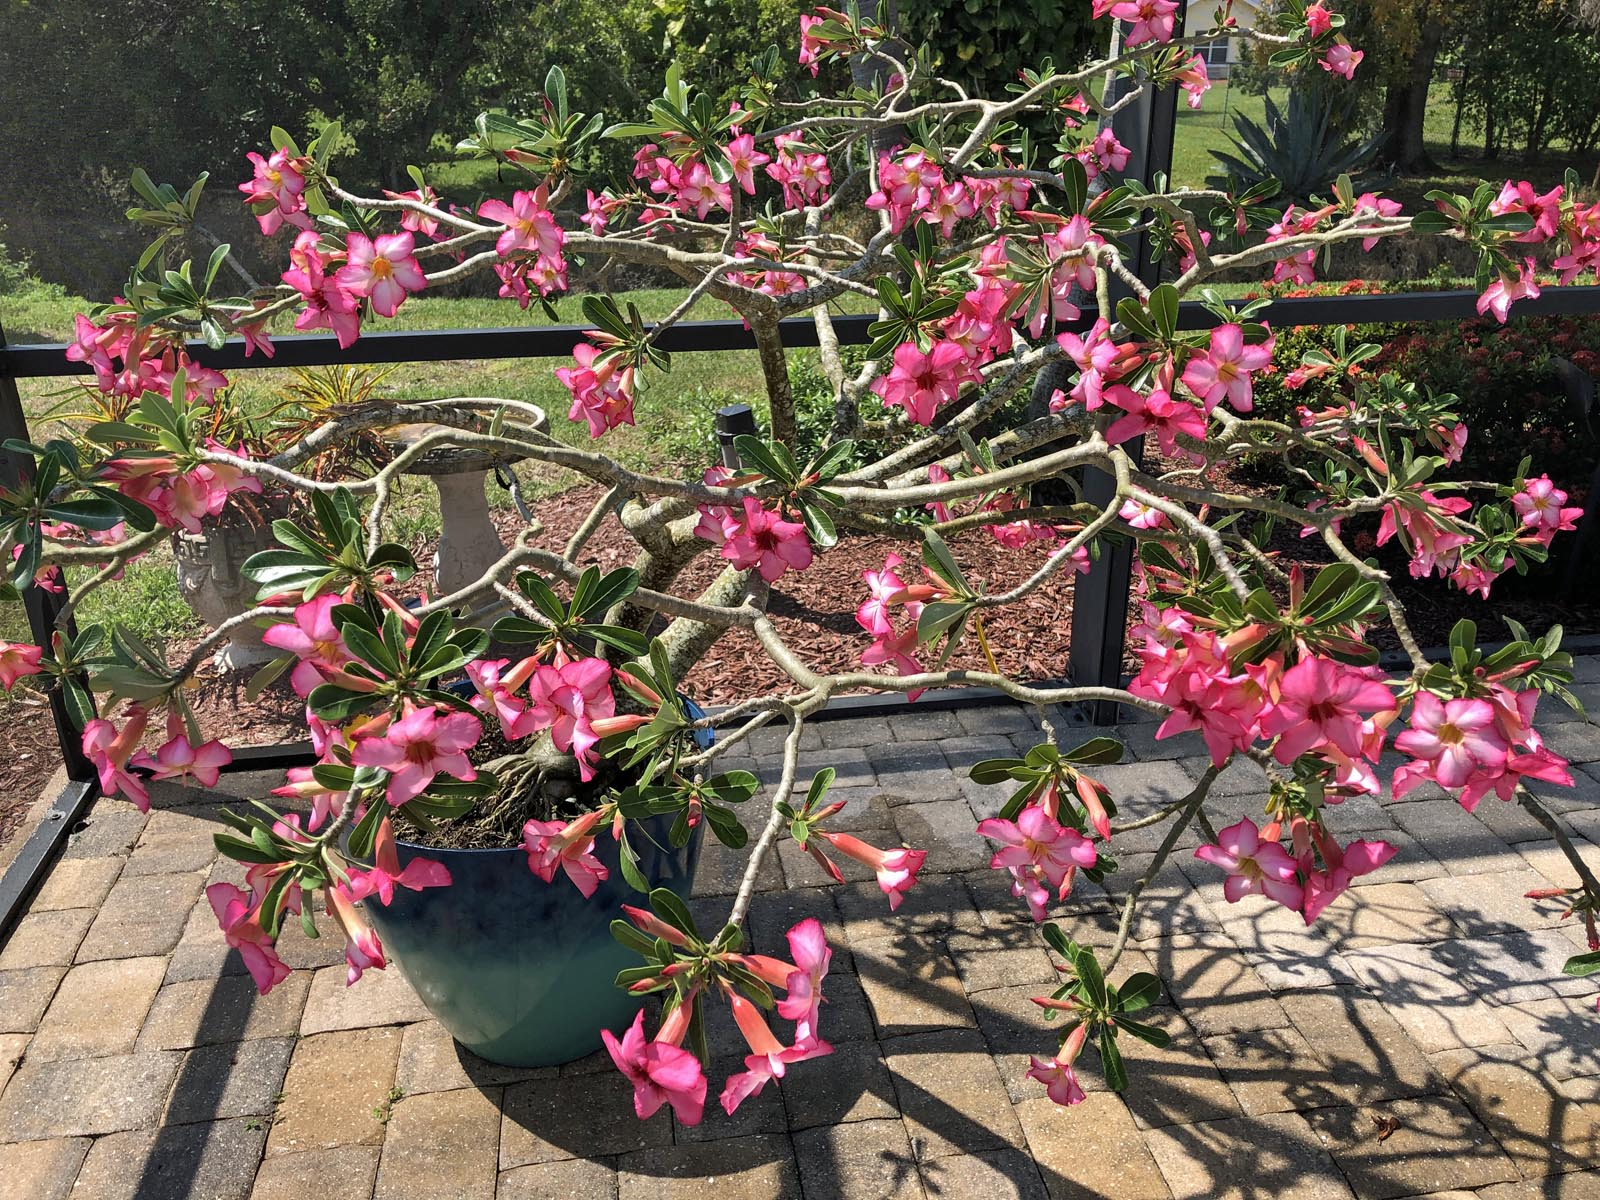 A Beautiful Sunday Meant We Enjoyed The Bloom On Our Patio